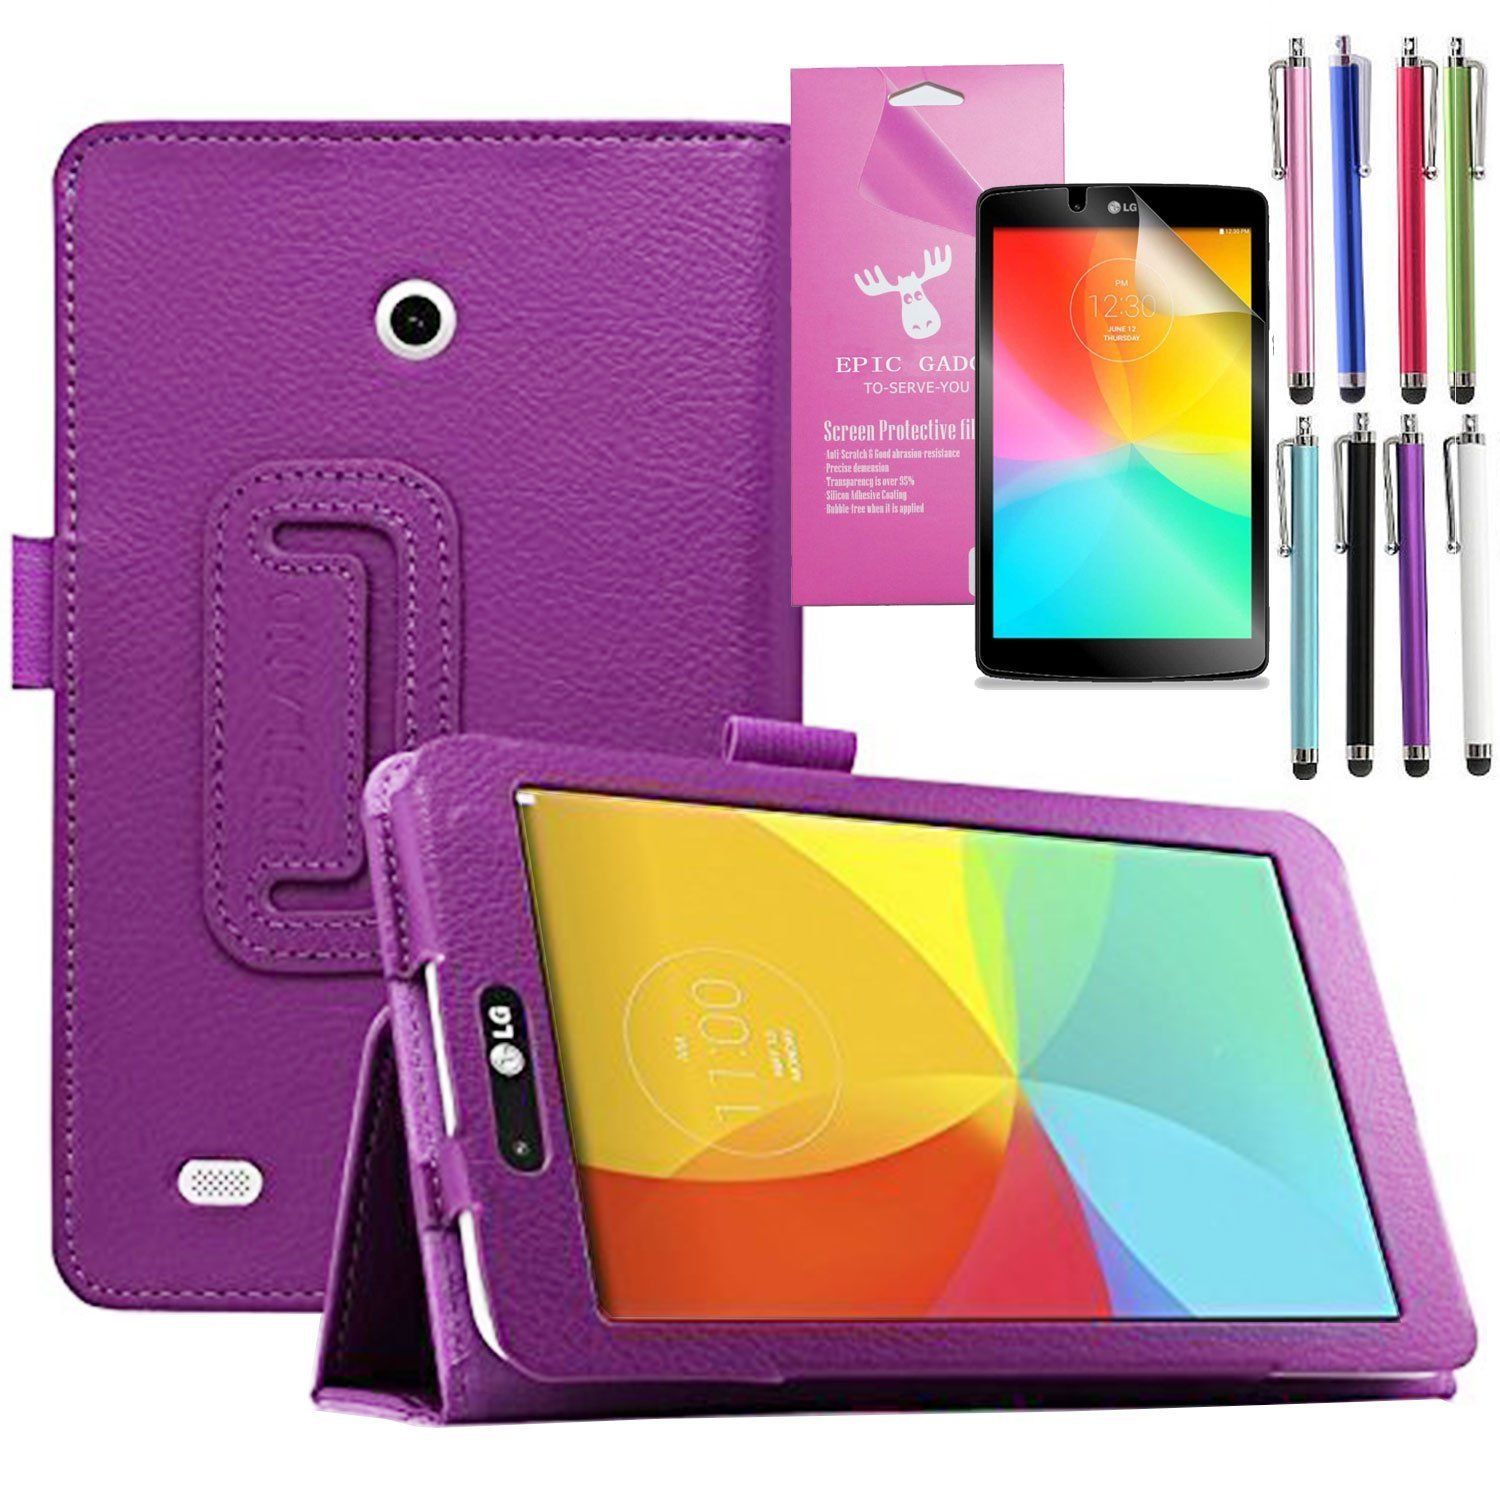 LG G Pad 7.0 Case, EpicGadget(TM) Auto Sleep/Wake Premium Folding Folio Smart PU Leather Case For G Pad 7.0 (V400/V410/VK410/UK410) with Built in Stand + 1 Screen Protector + 1 Stylus (Purple)